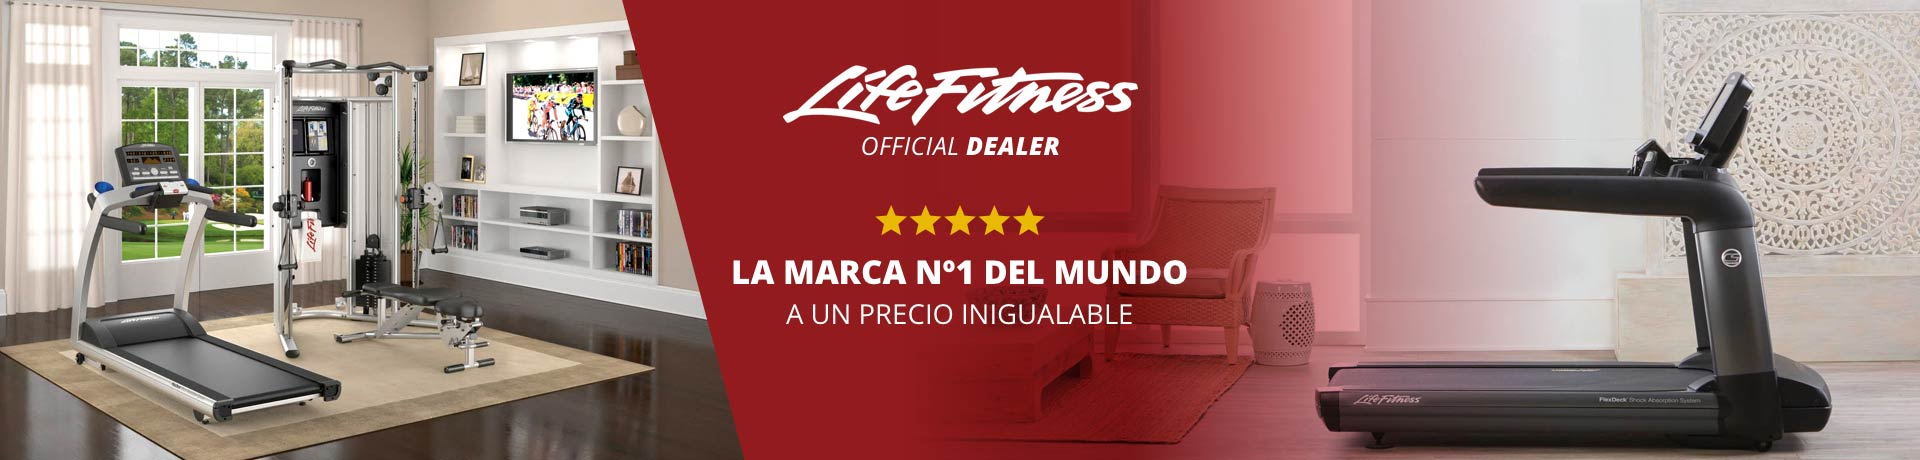 life-fitness